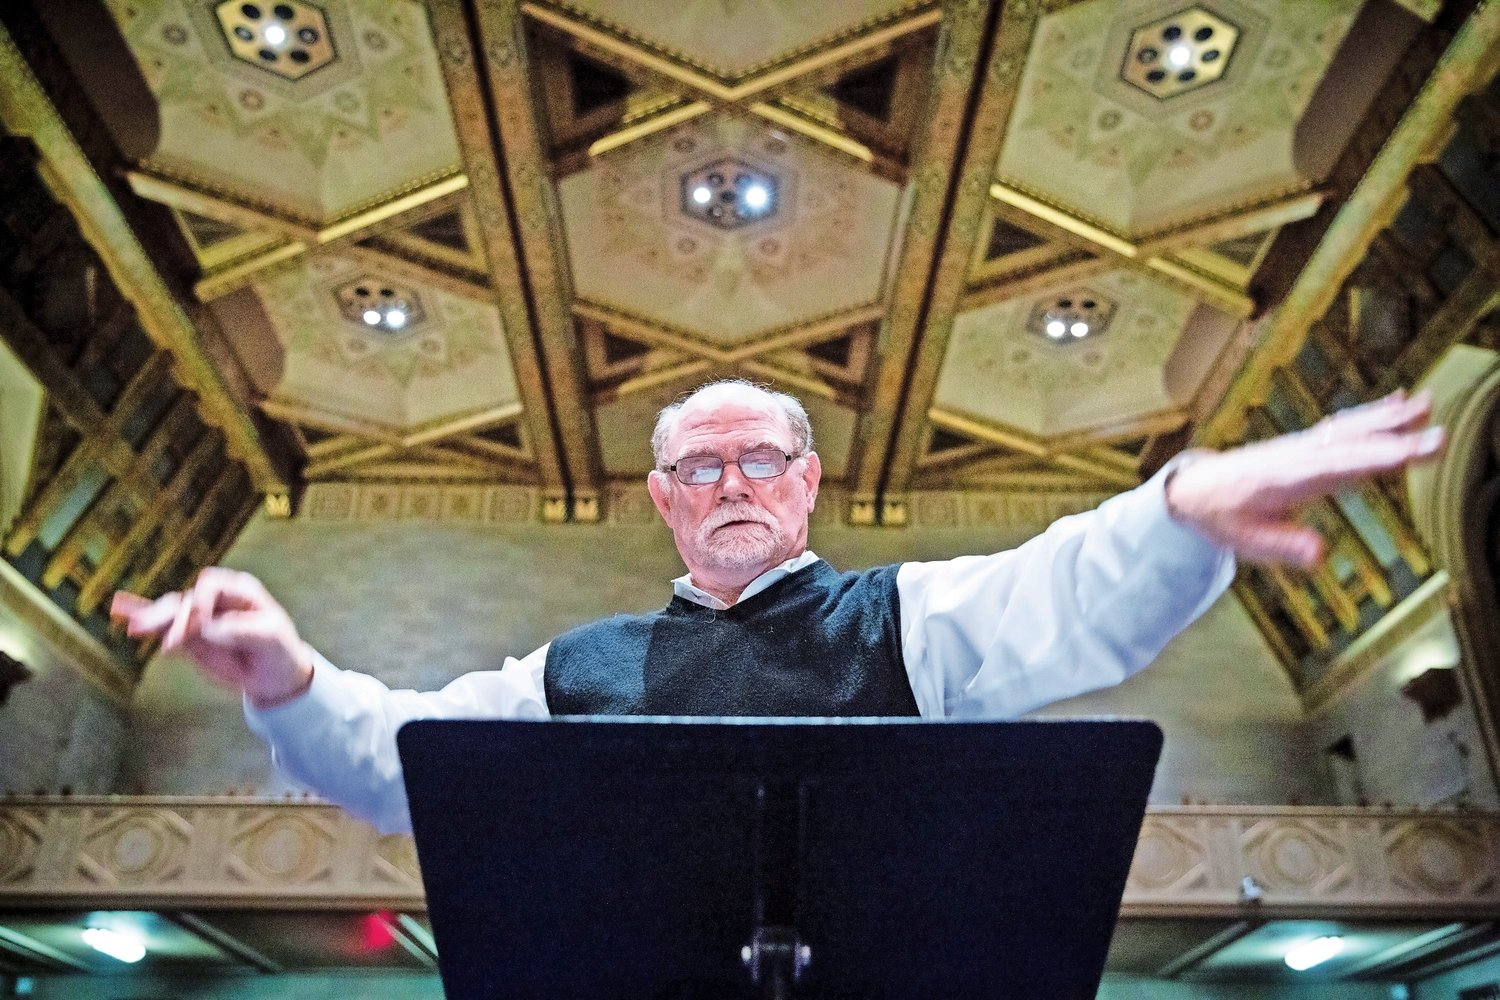 Patrick Gardner, conductor of the Riverside Choral Society, leads a rehearsal of 'Annelies,' a concert featuring excerpts from 'The Diary of Anne Frank,' ahead of a performance on Nov. 11 at Congregation Rodeph Sholom.